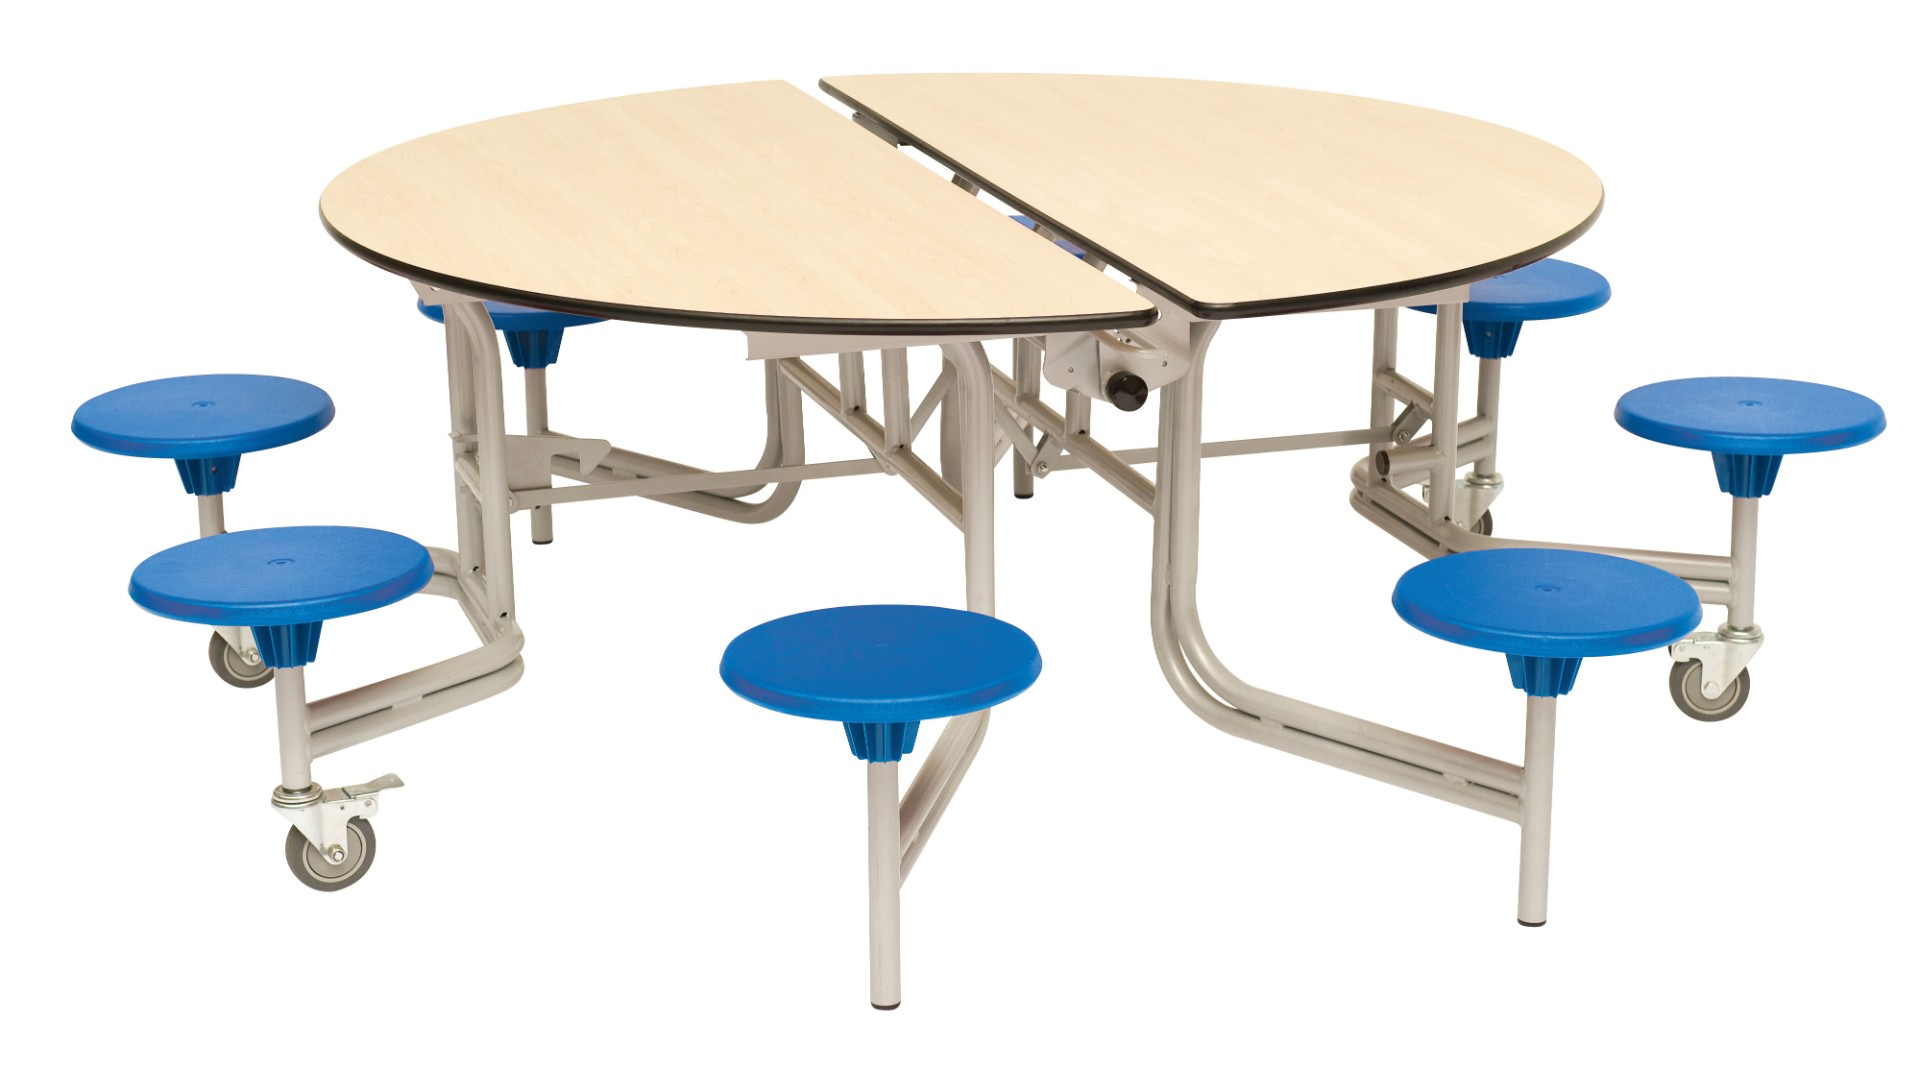 8 Seat Round Mobile Folding Dining Table